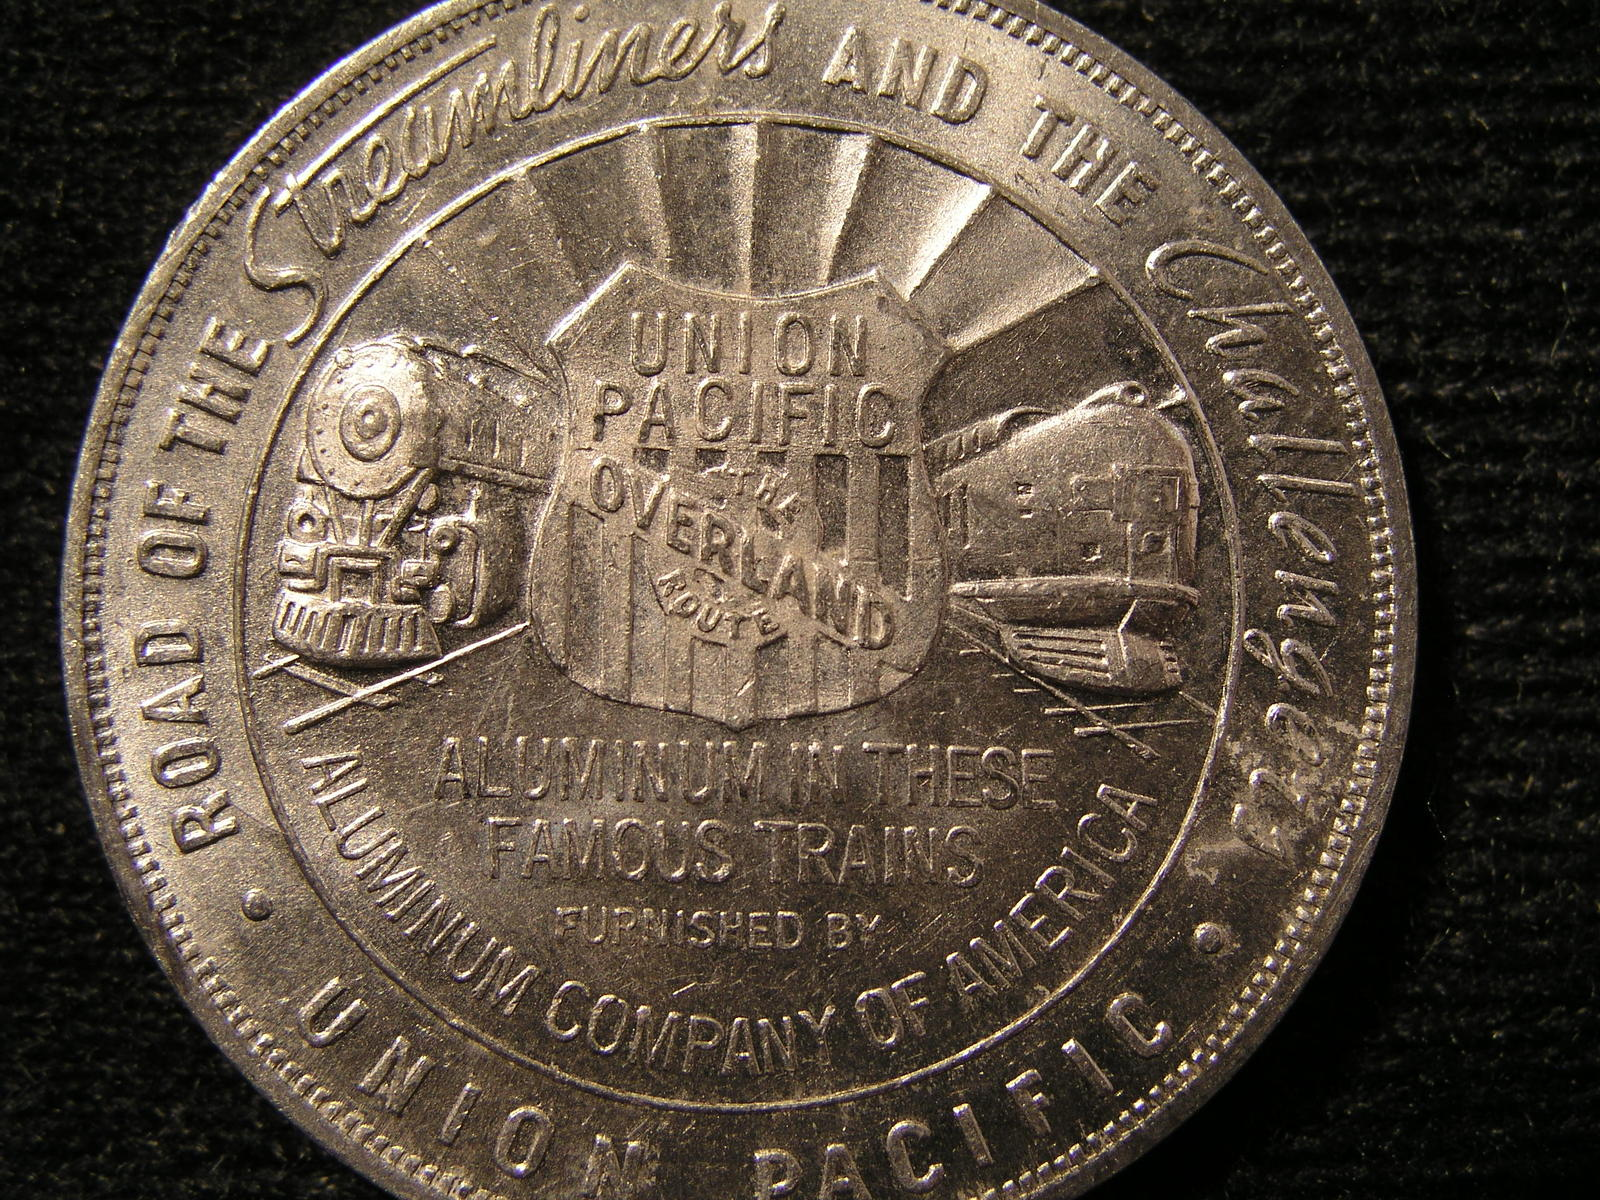 1939 GOLDEN GATE INTERNATIONAL EXPOSITION TOKEN - (sku#2311)